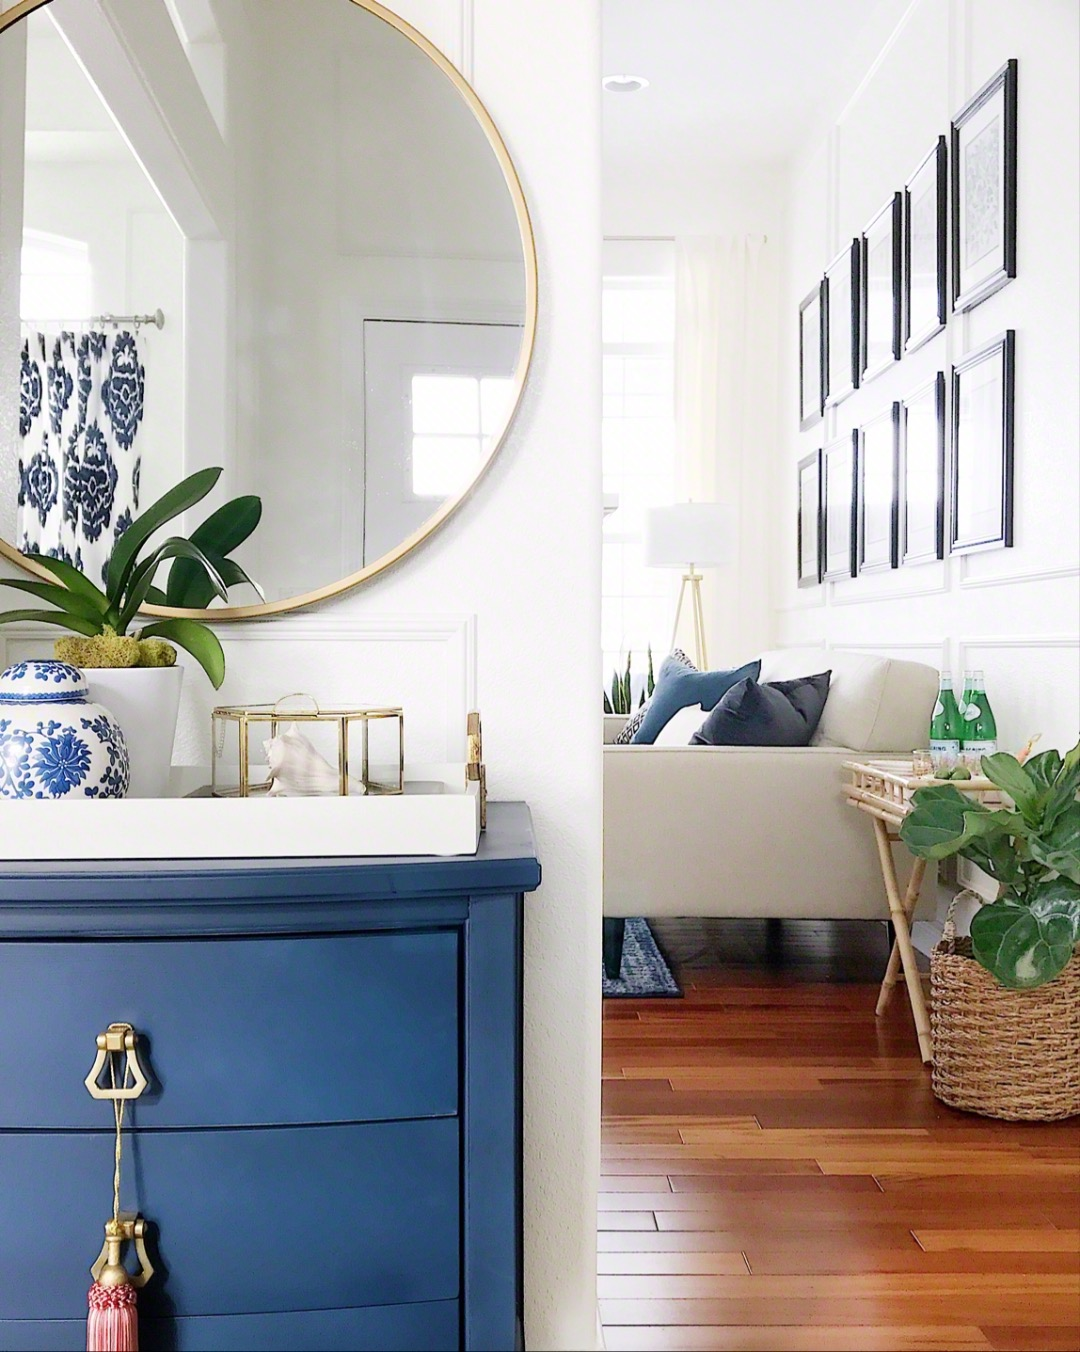 Decorating With Blue In The Entryway Blue And White Ginger Jar #homedecor